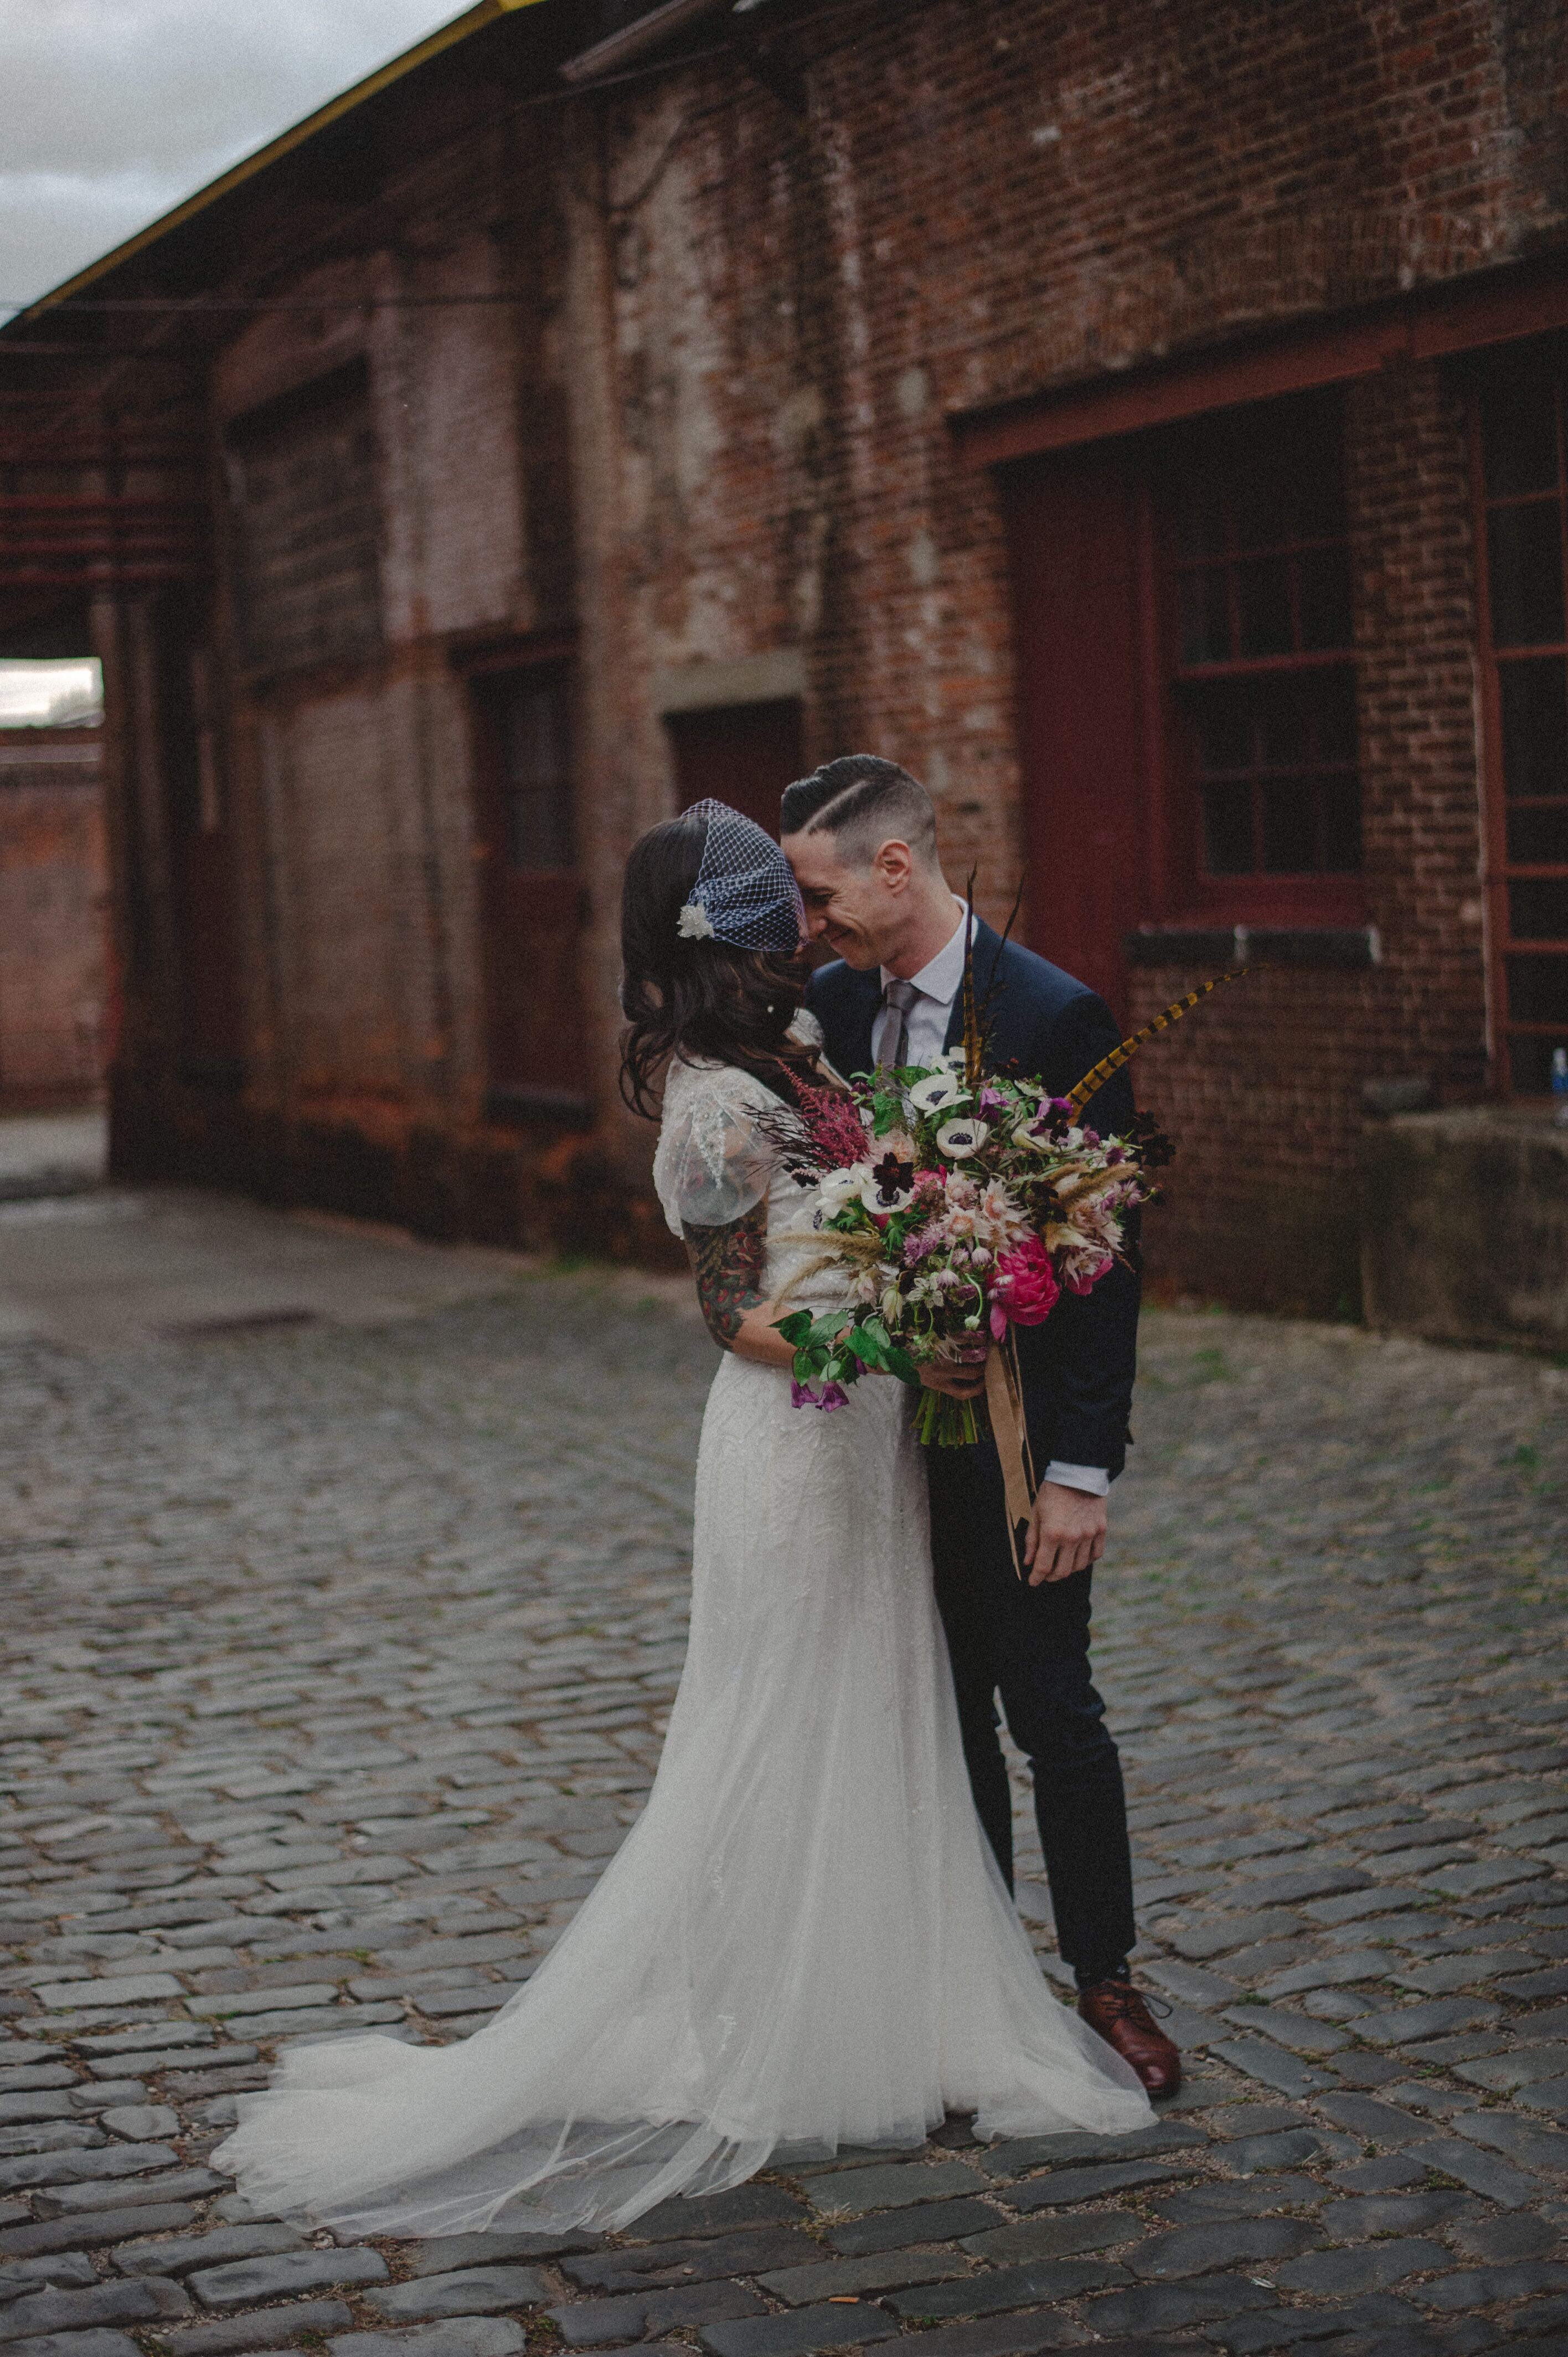 An Urban Modern Wedding At The Art Factory In Paterson New Jersey